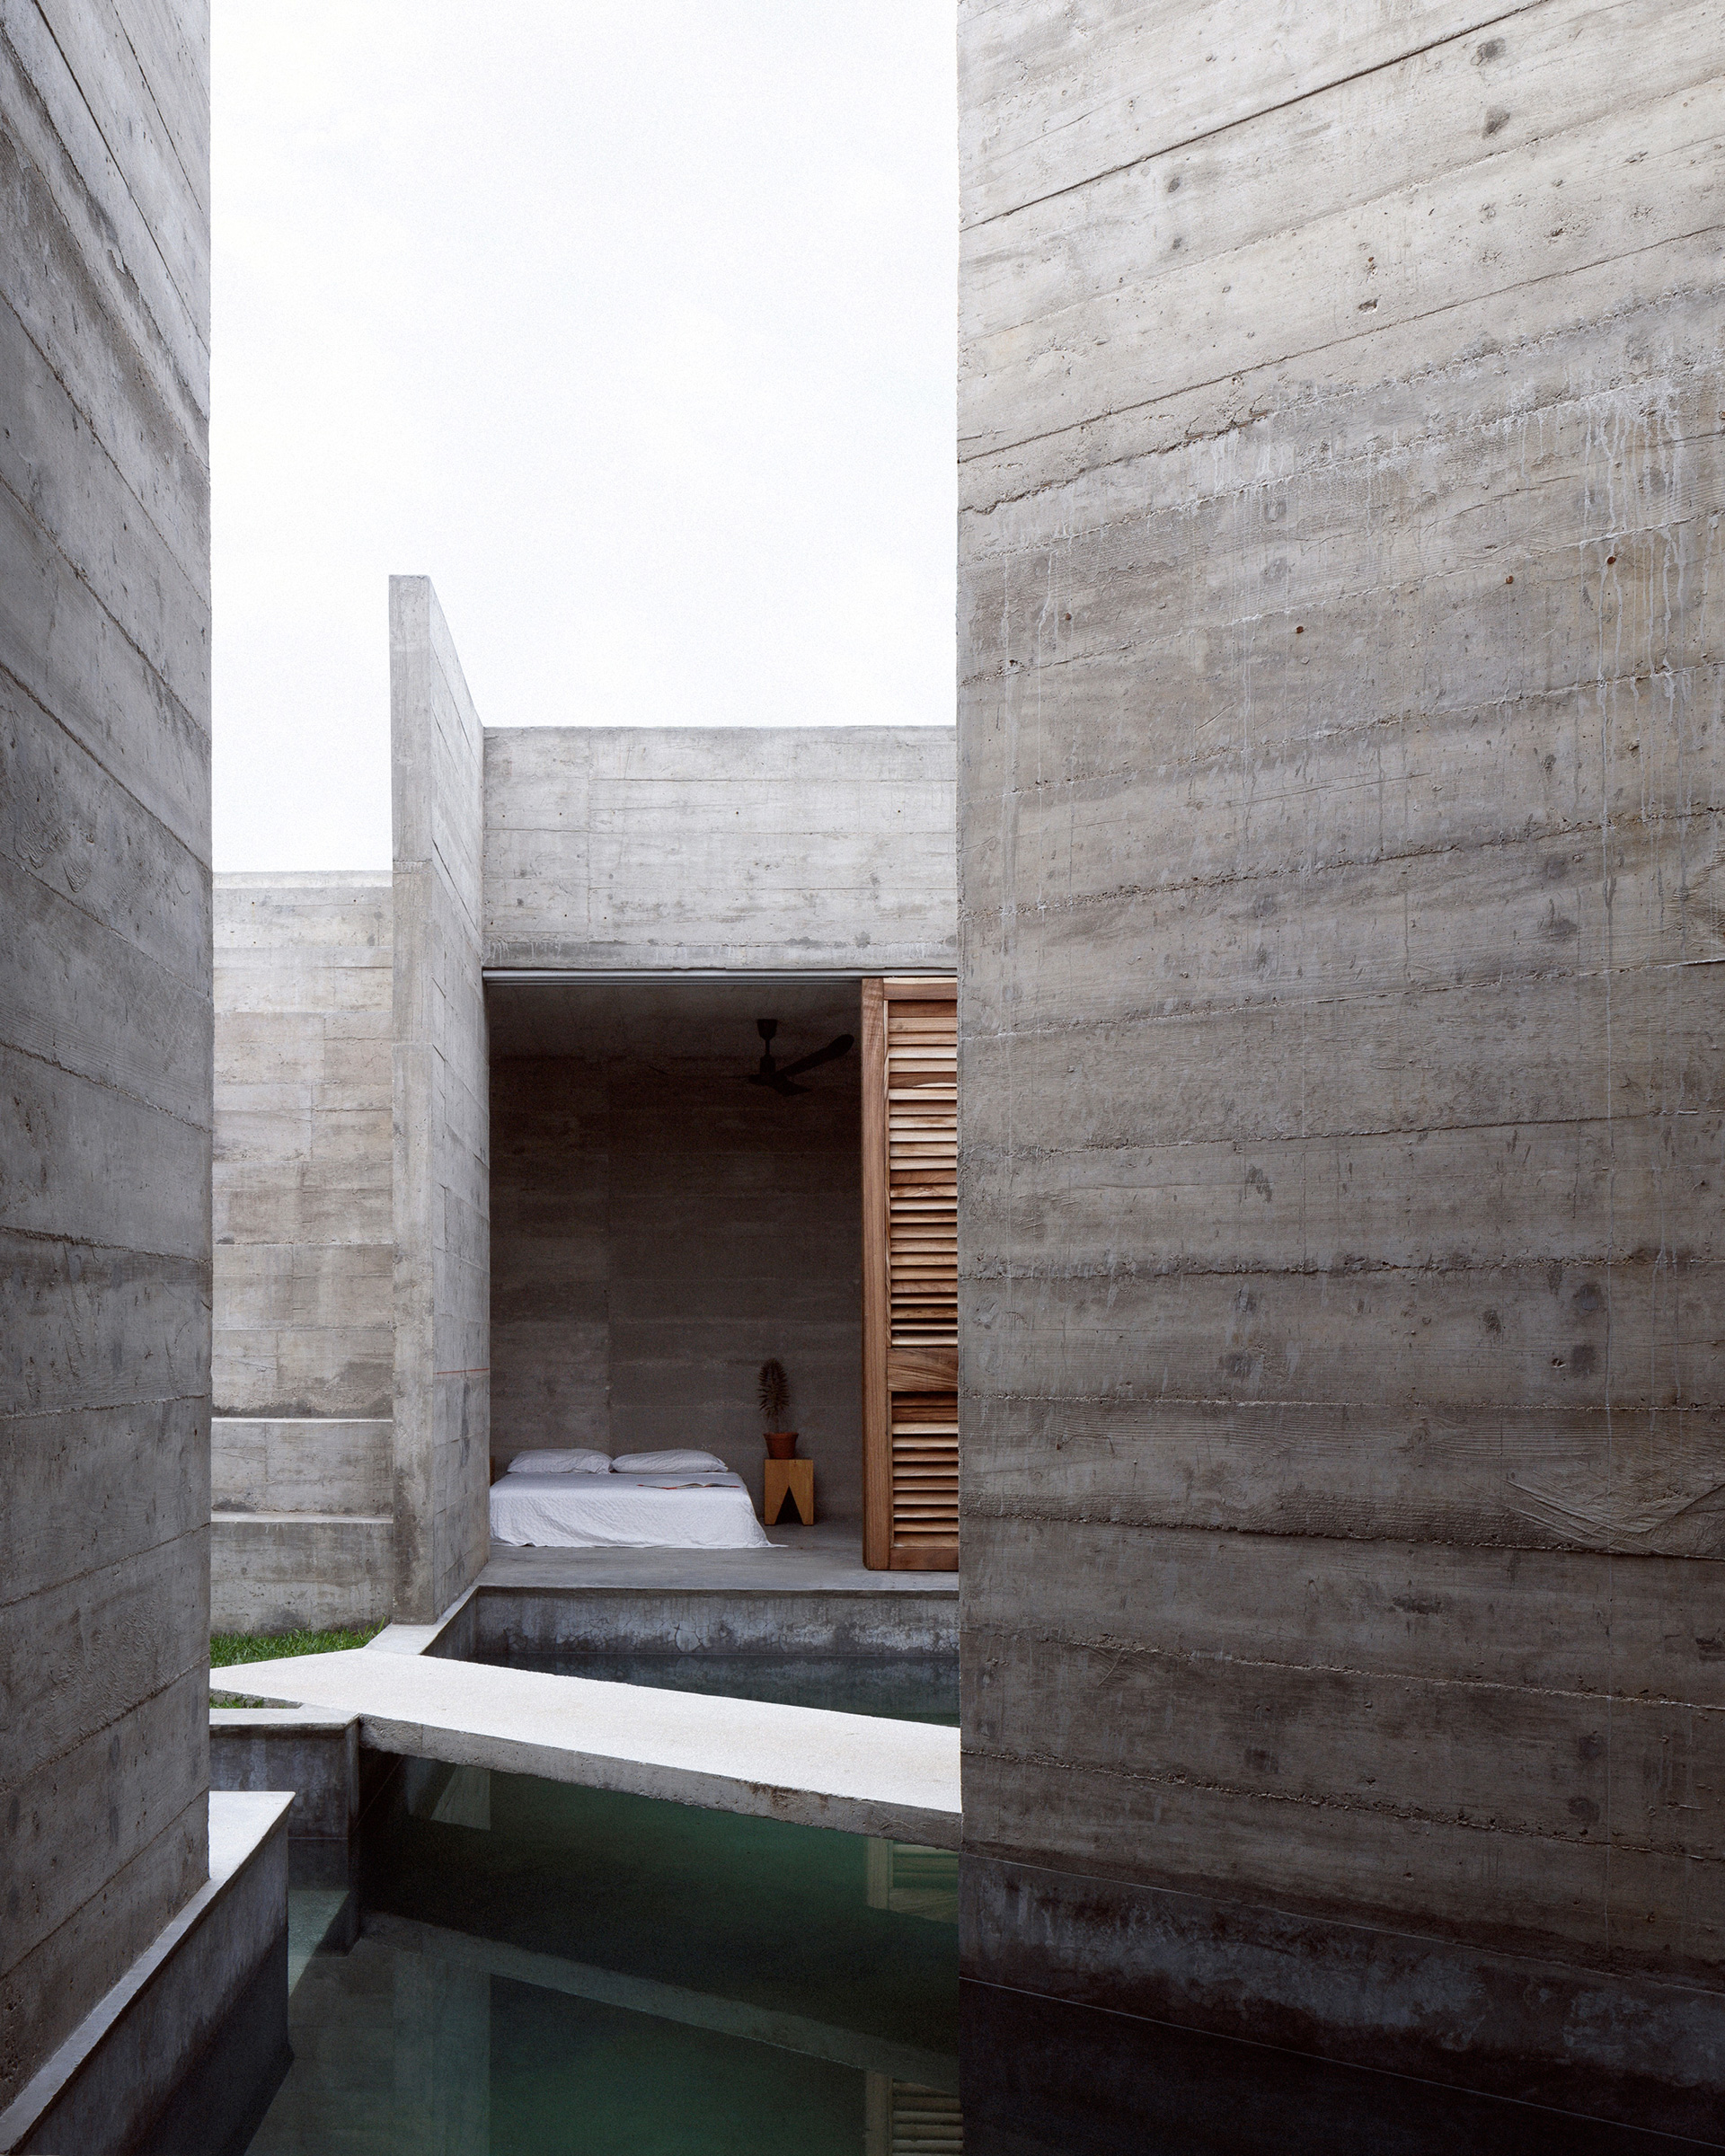 The open-air space at the back houses a small swimming pool, which can be viewed from the bedrooms | Mexico | Ludwig Godefroy |STIRworld